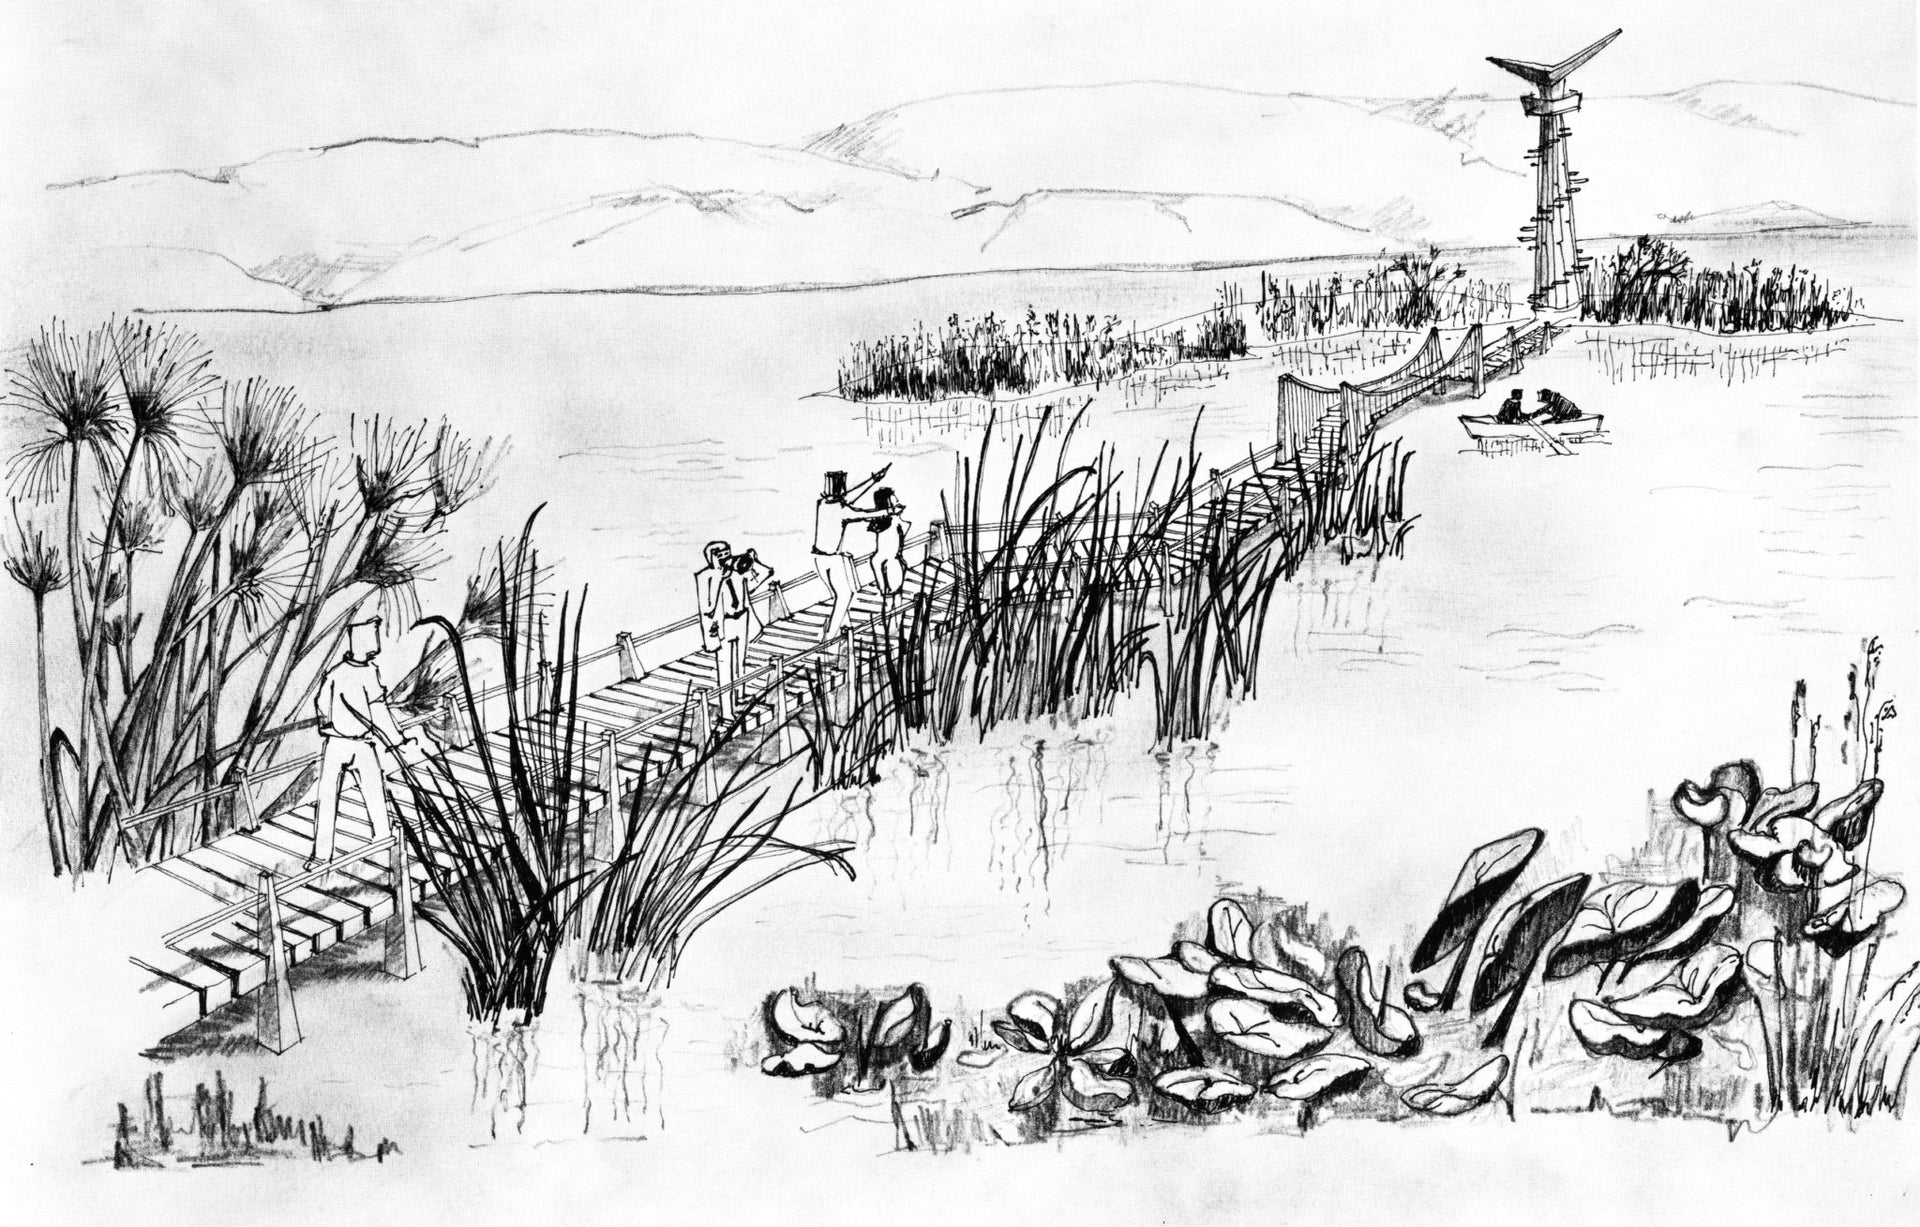 Drawing by Ruth Enis of the Hula nature reserve.